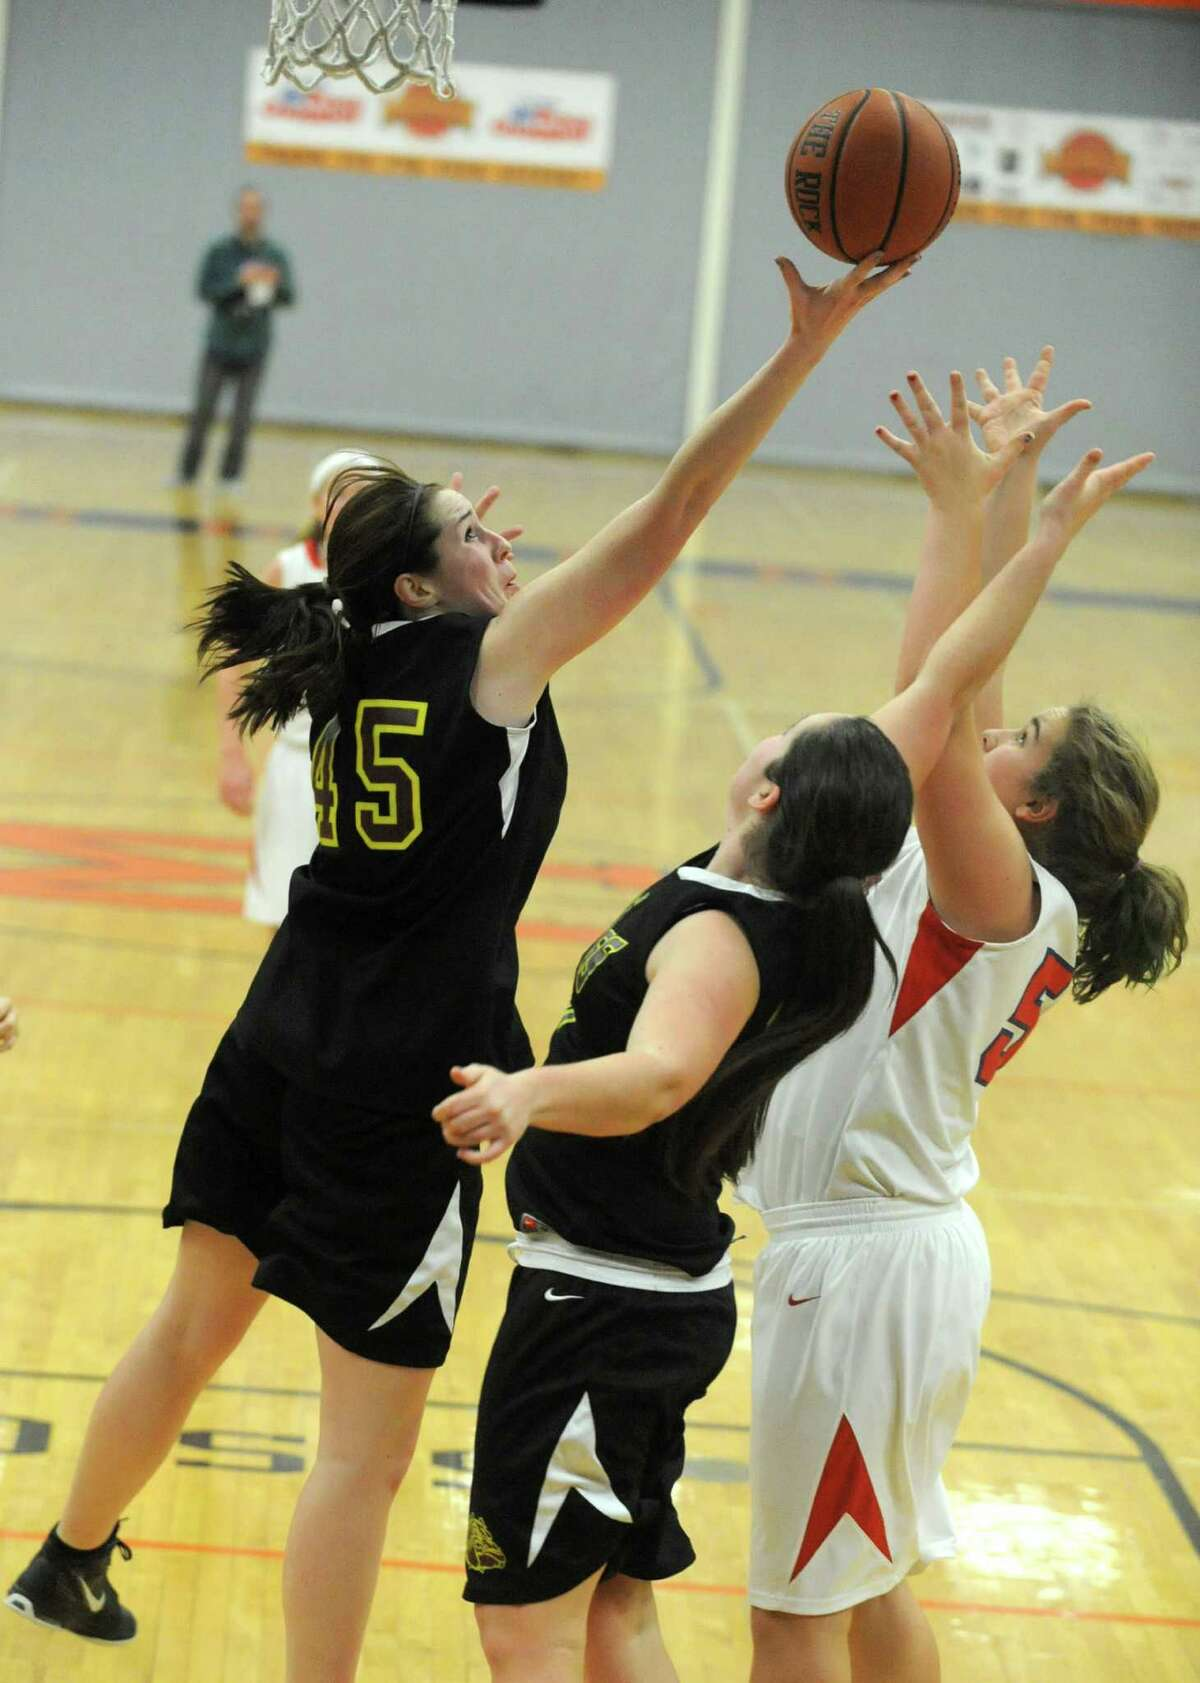 Berne Knox's Mary Salo gets her fingers on a rebound during a basketball game against Maple Hills at Mohonasen High School on Friday Dec. 28, 2012 in Albany, N.Y. (Lori Van Buren / Times Union)